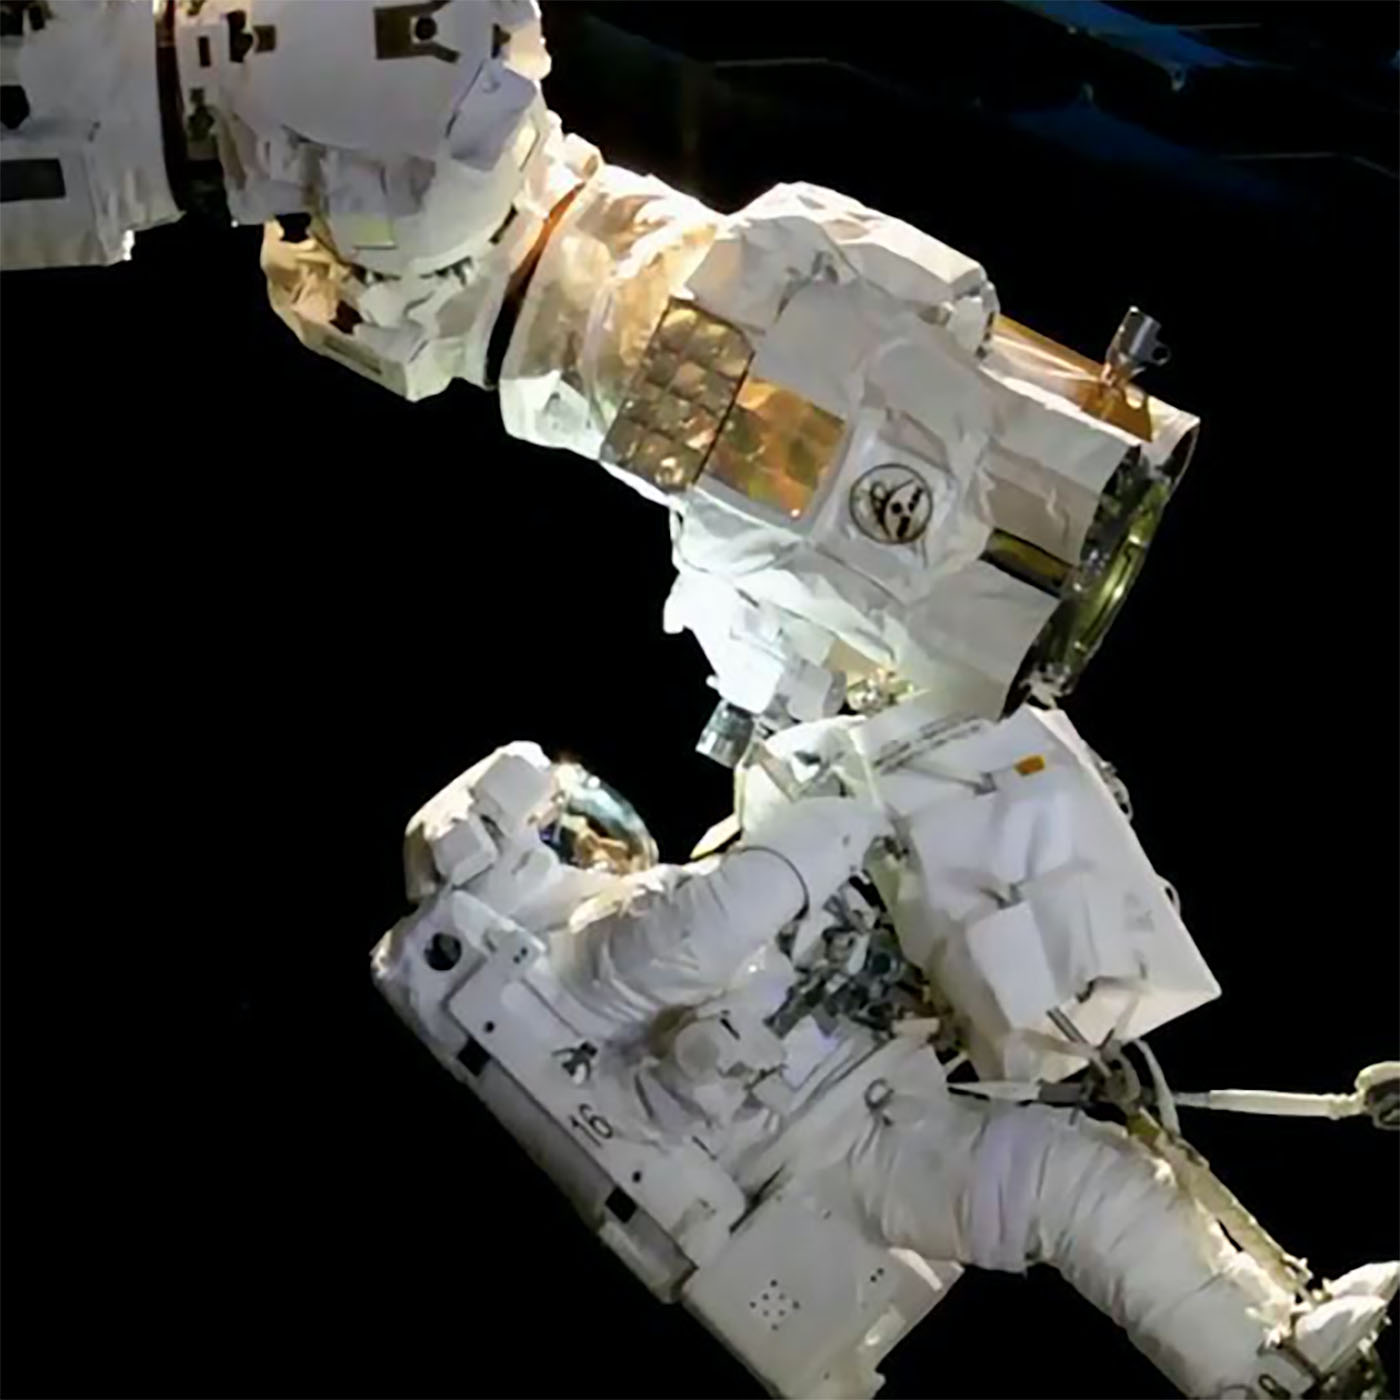 expedition53 spacewalk